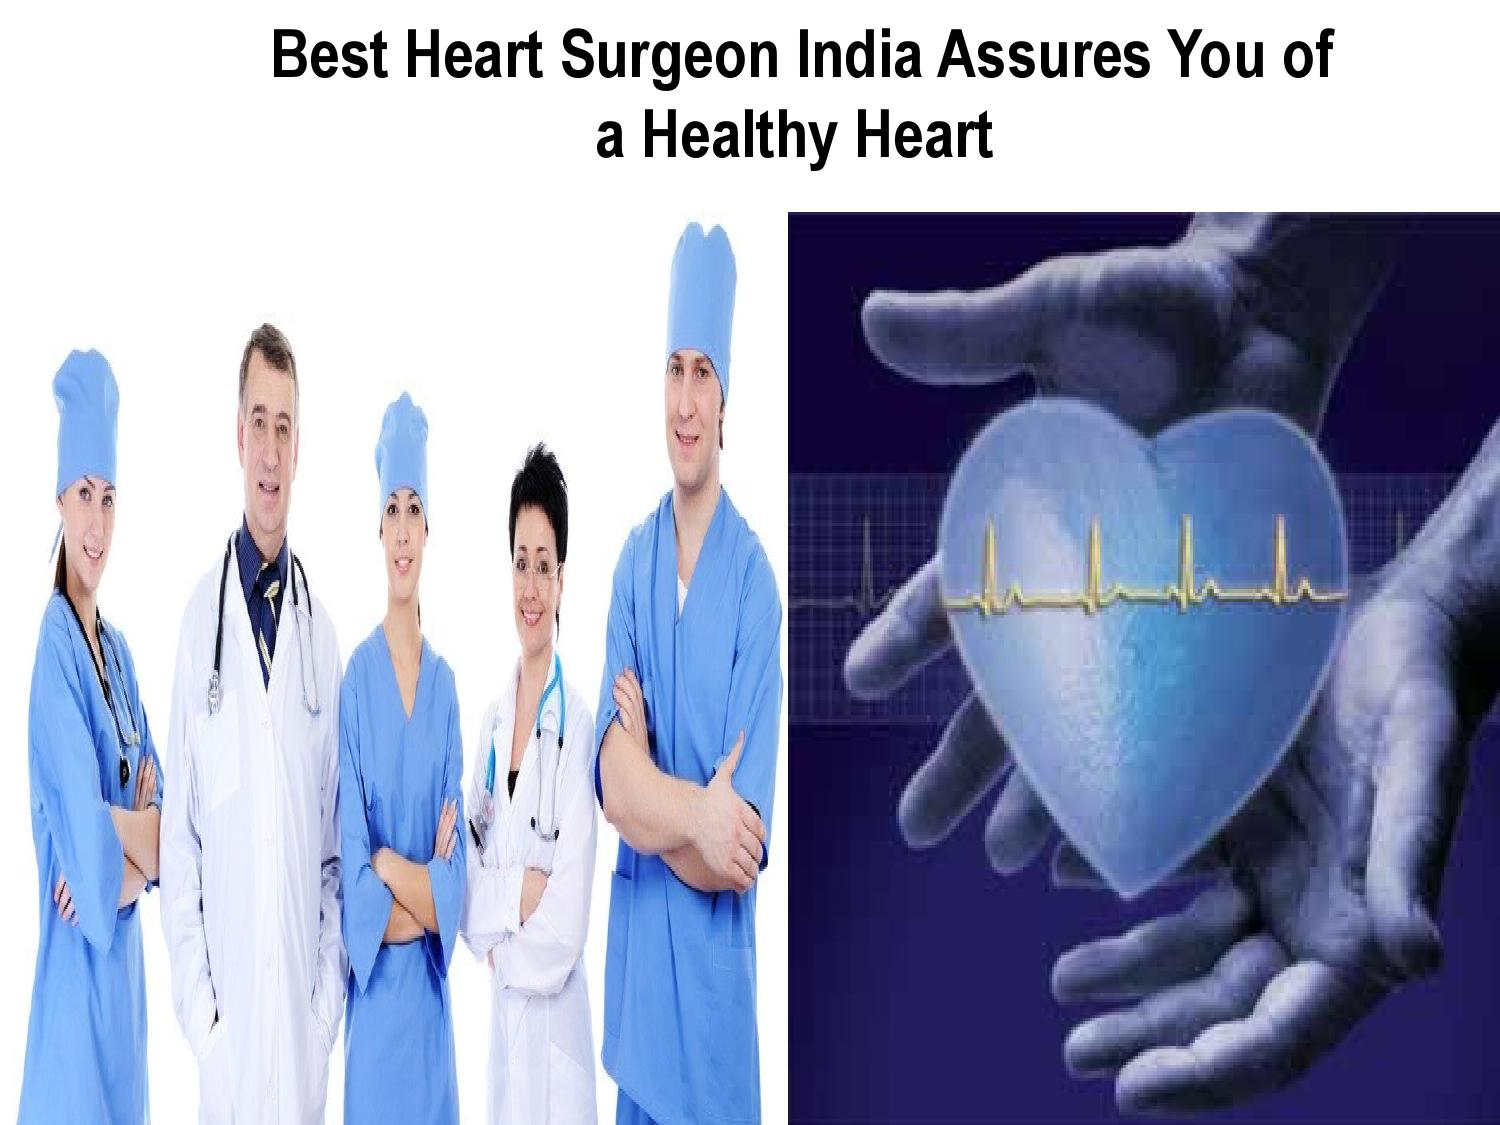 Best Heart Surgeon India Assures You Of A Healthy Heart By Wecaresurrogacy Issuu